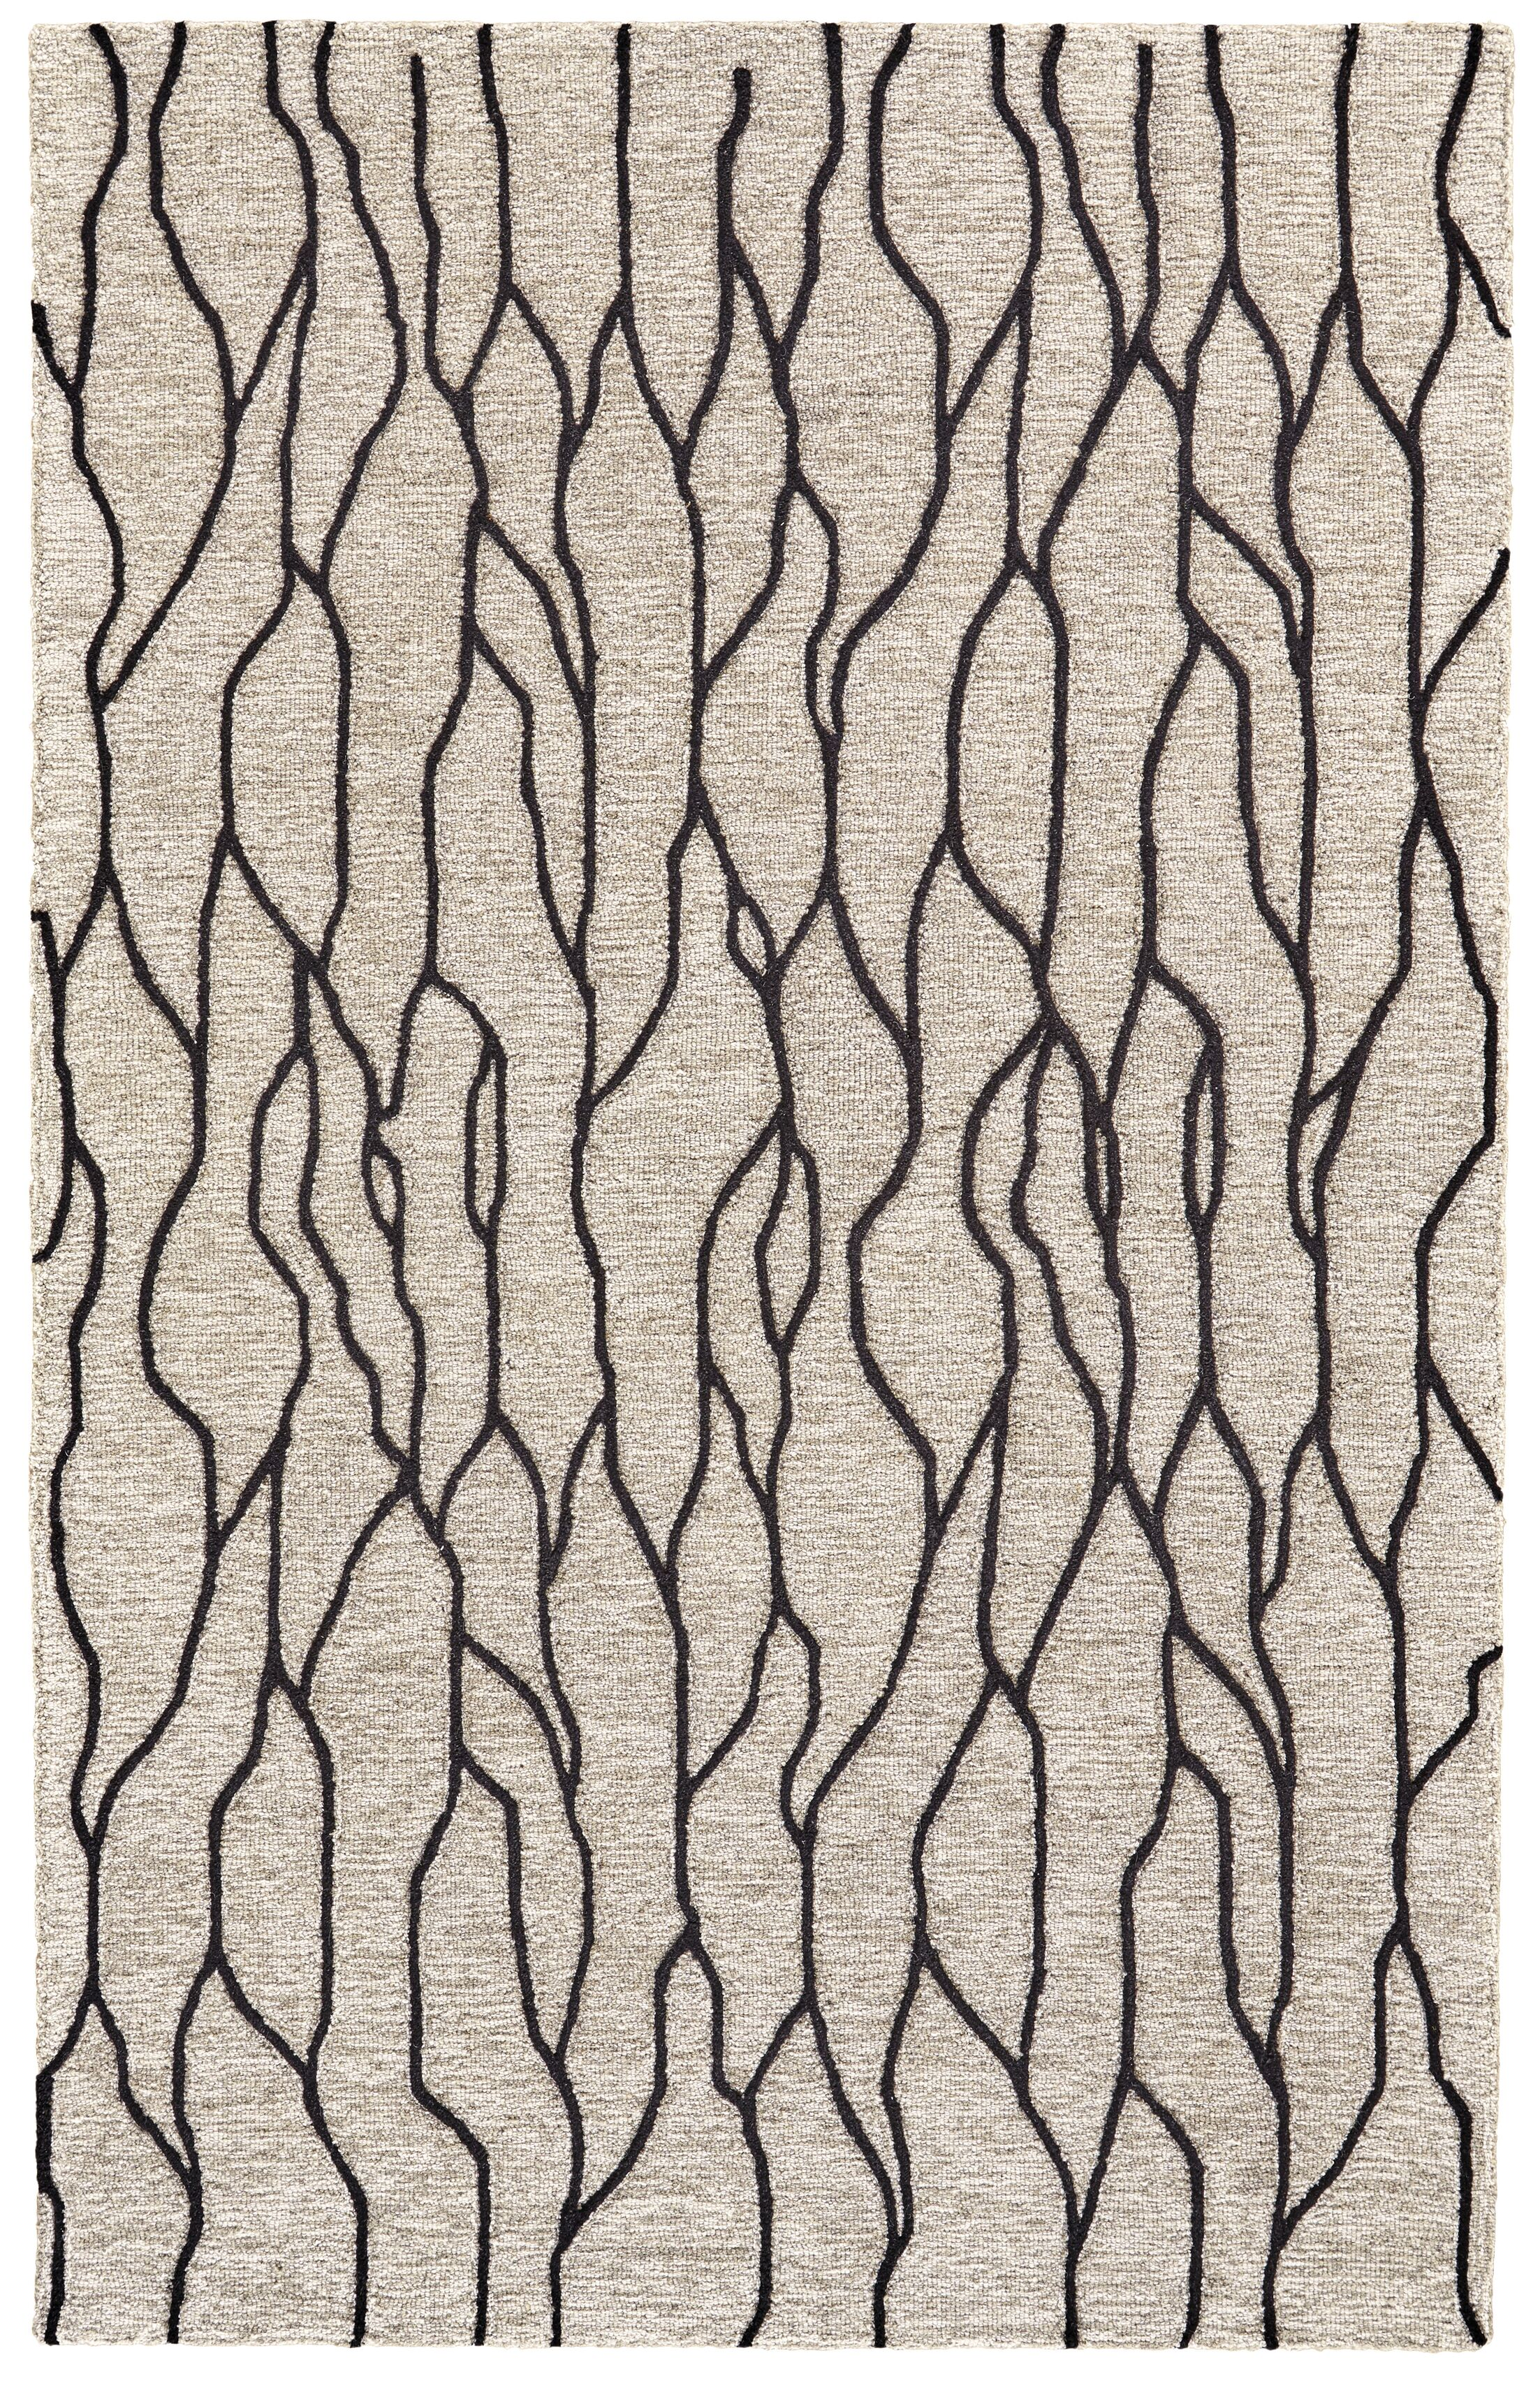 Grider Hand-Tufted Wool Black/Taupe Area Rug Rug Size: Rectangle 9'6